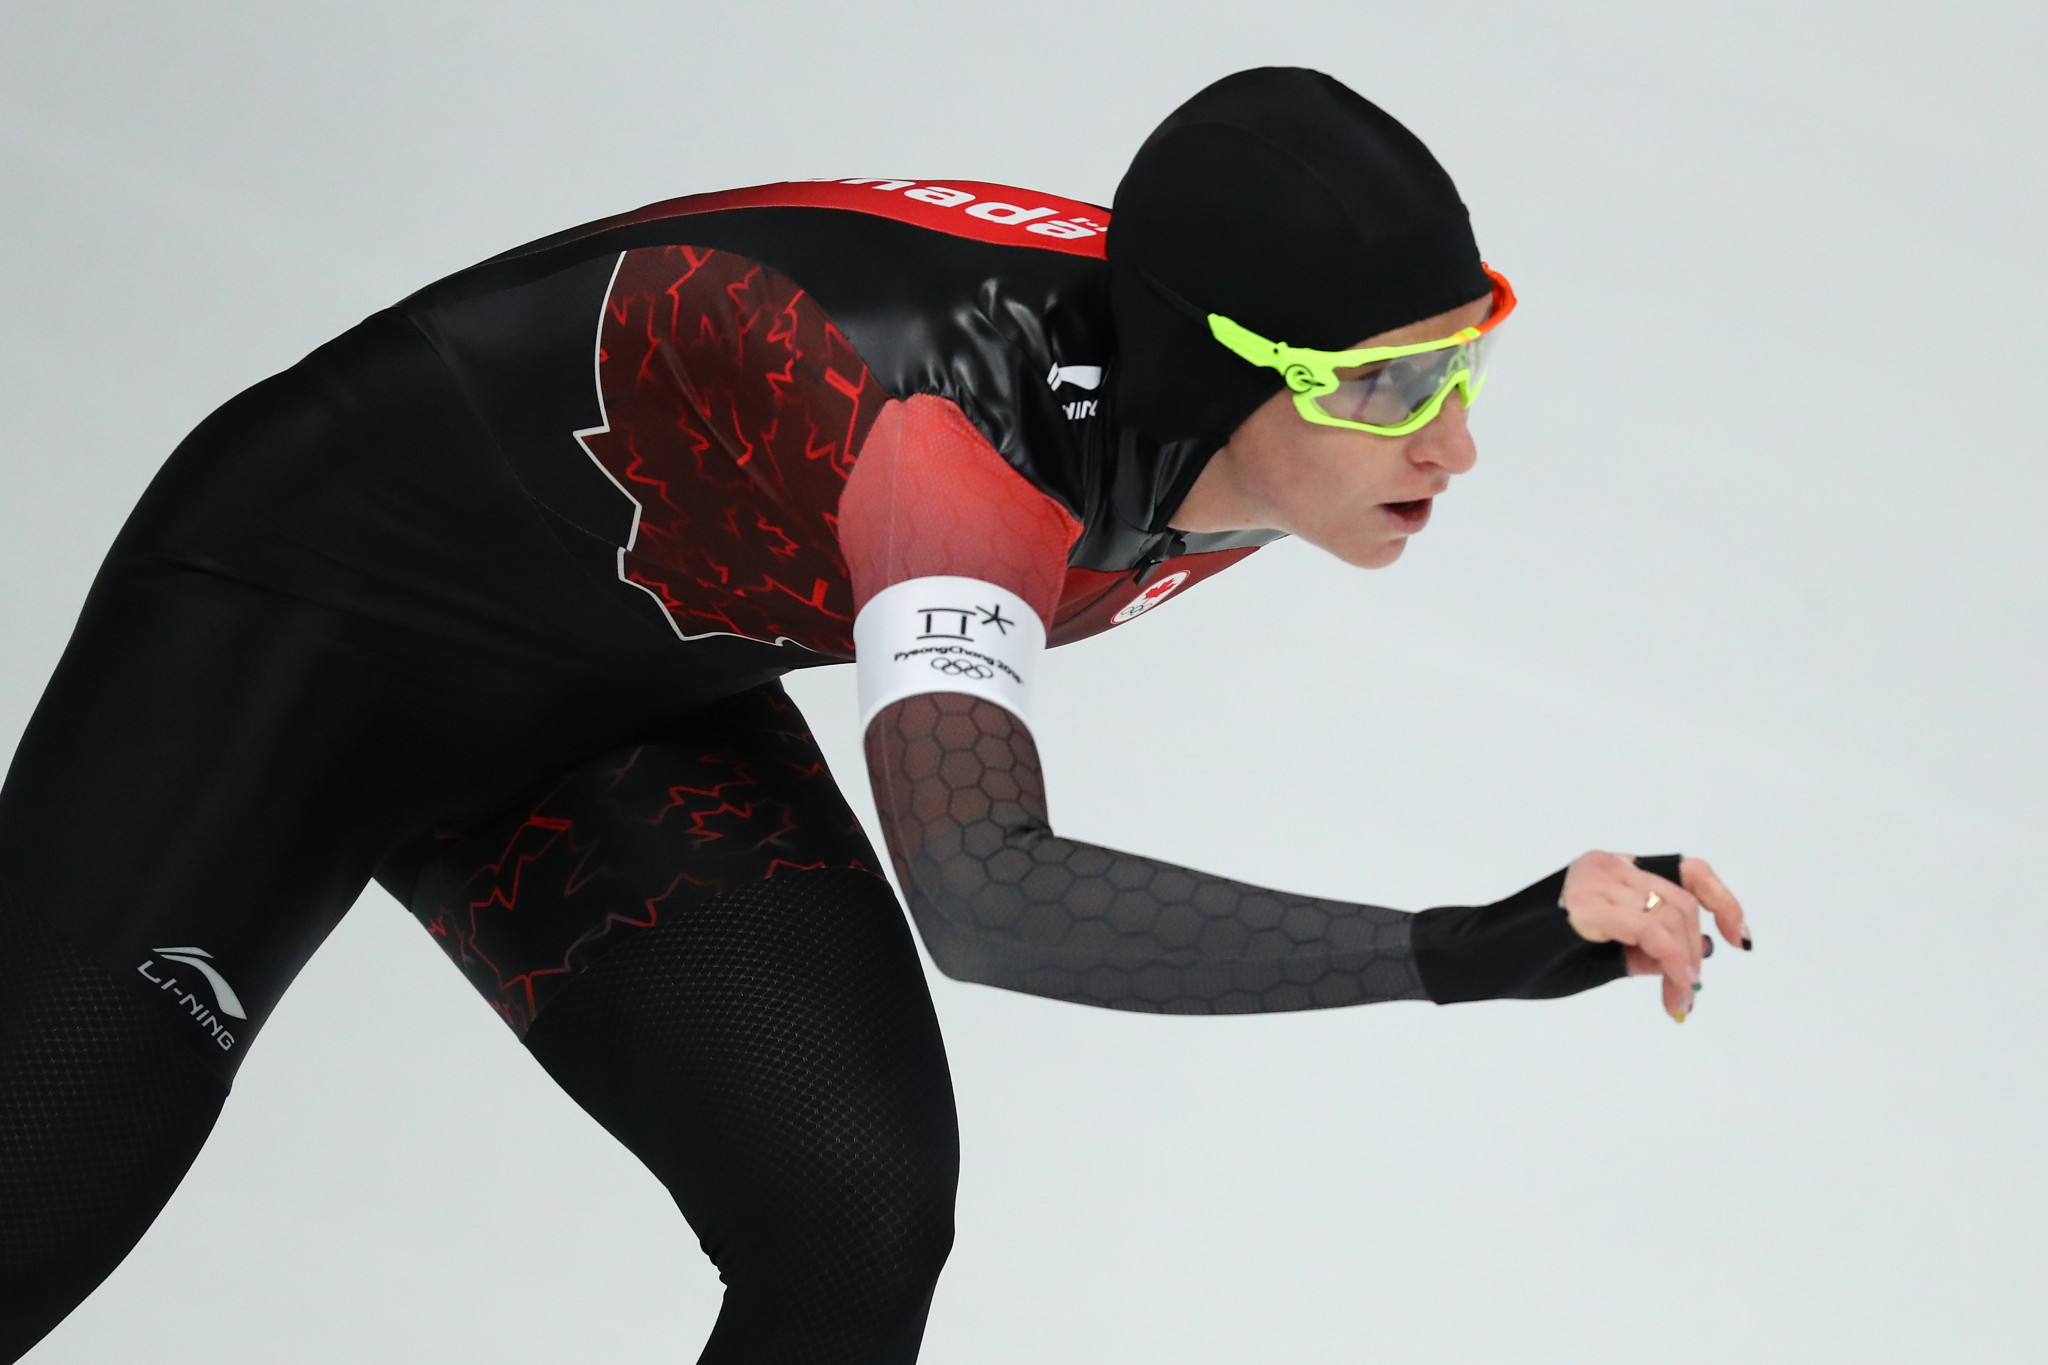 Blondin eases into mass start final at ISU Speed Skating World Cup in Heerenveen